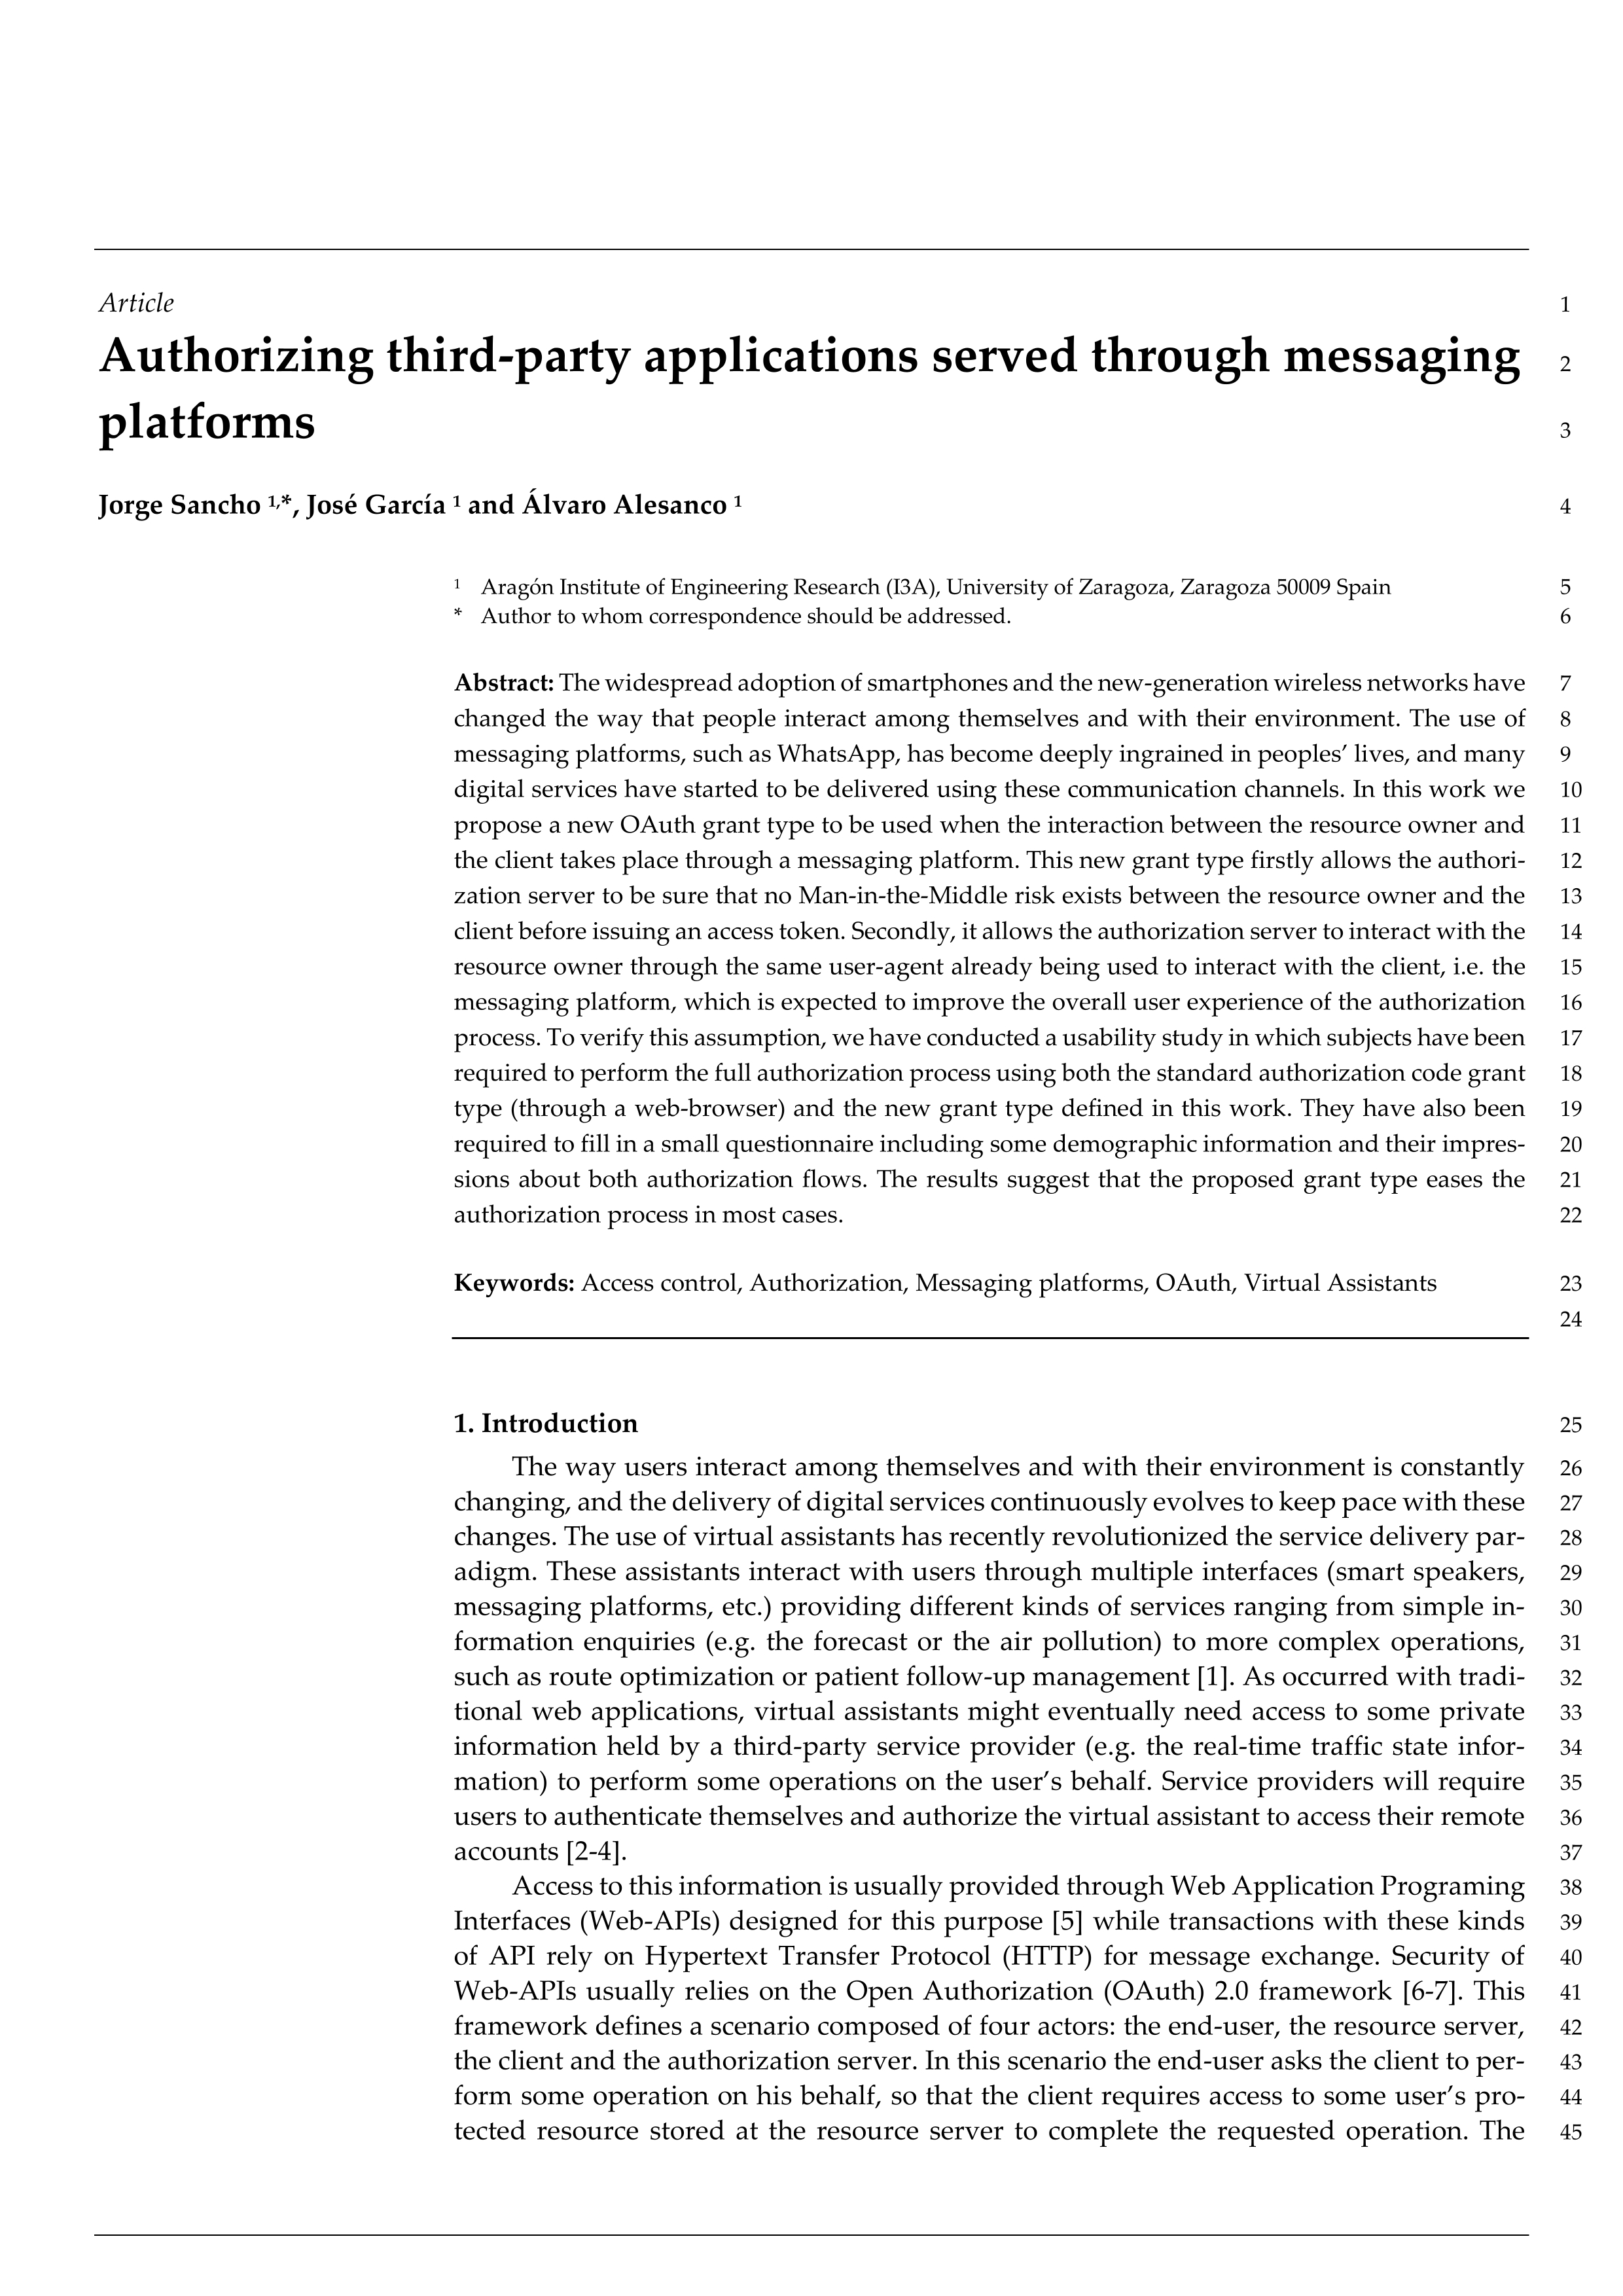 Authorizing Third-Party Applications Served through Messaging Platforms